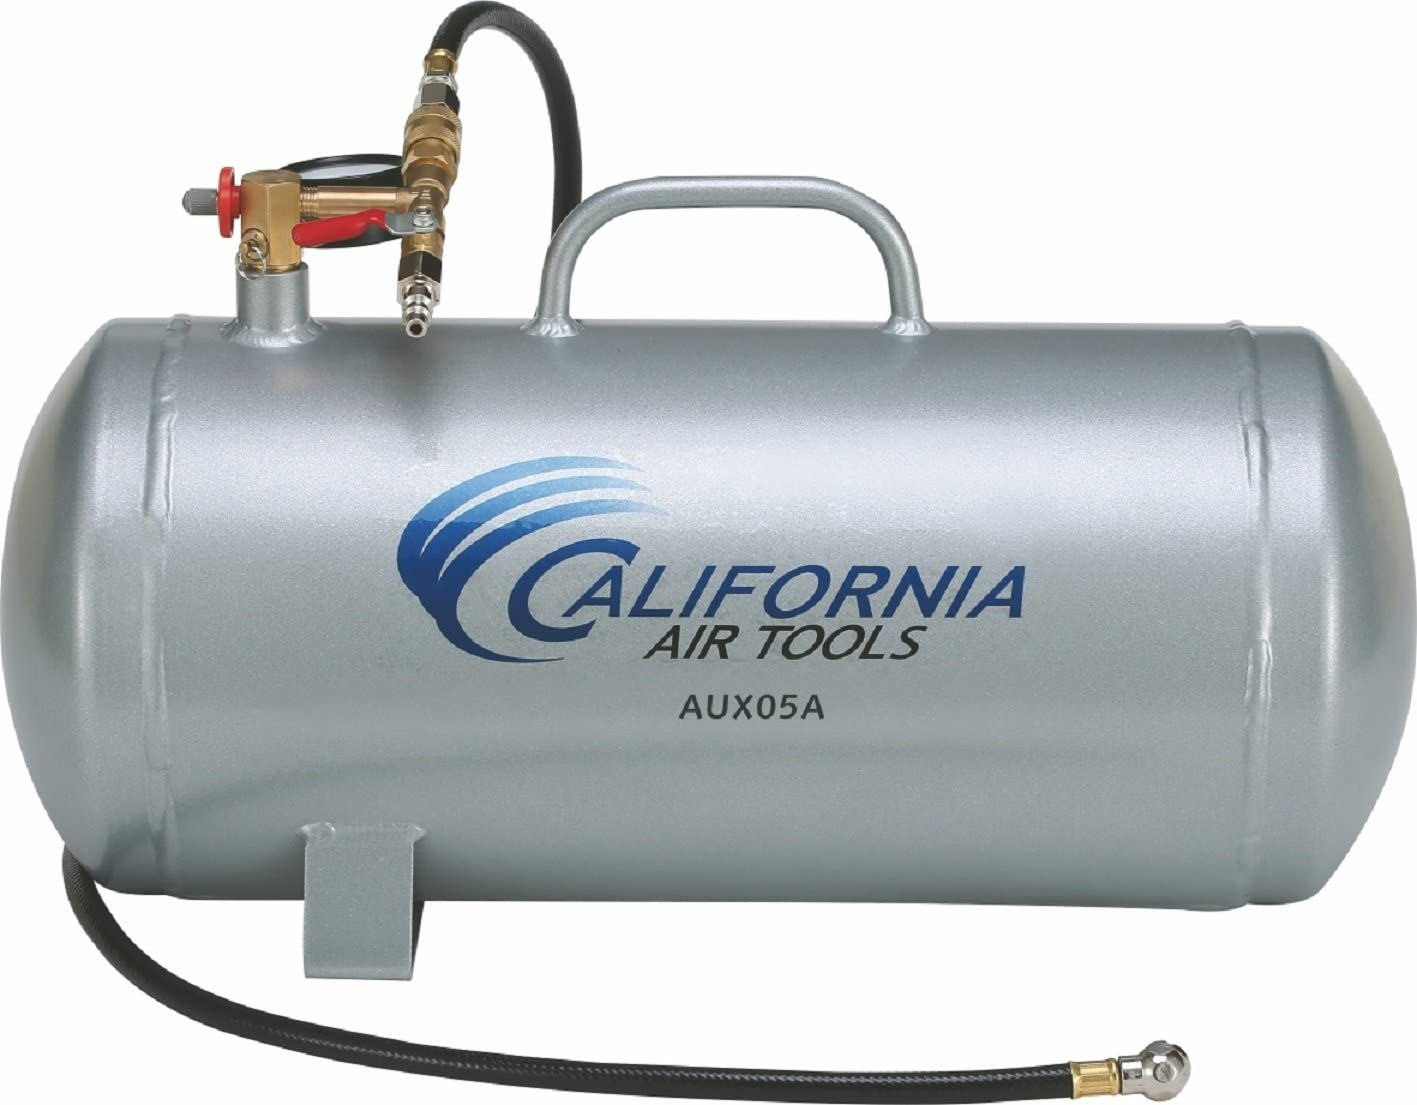 California Air Tools CAT-AUX05A Lightweight Portable Aluminum Air Tank, 5 Gallon, Silver